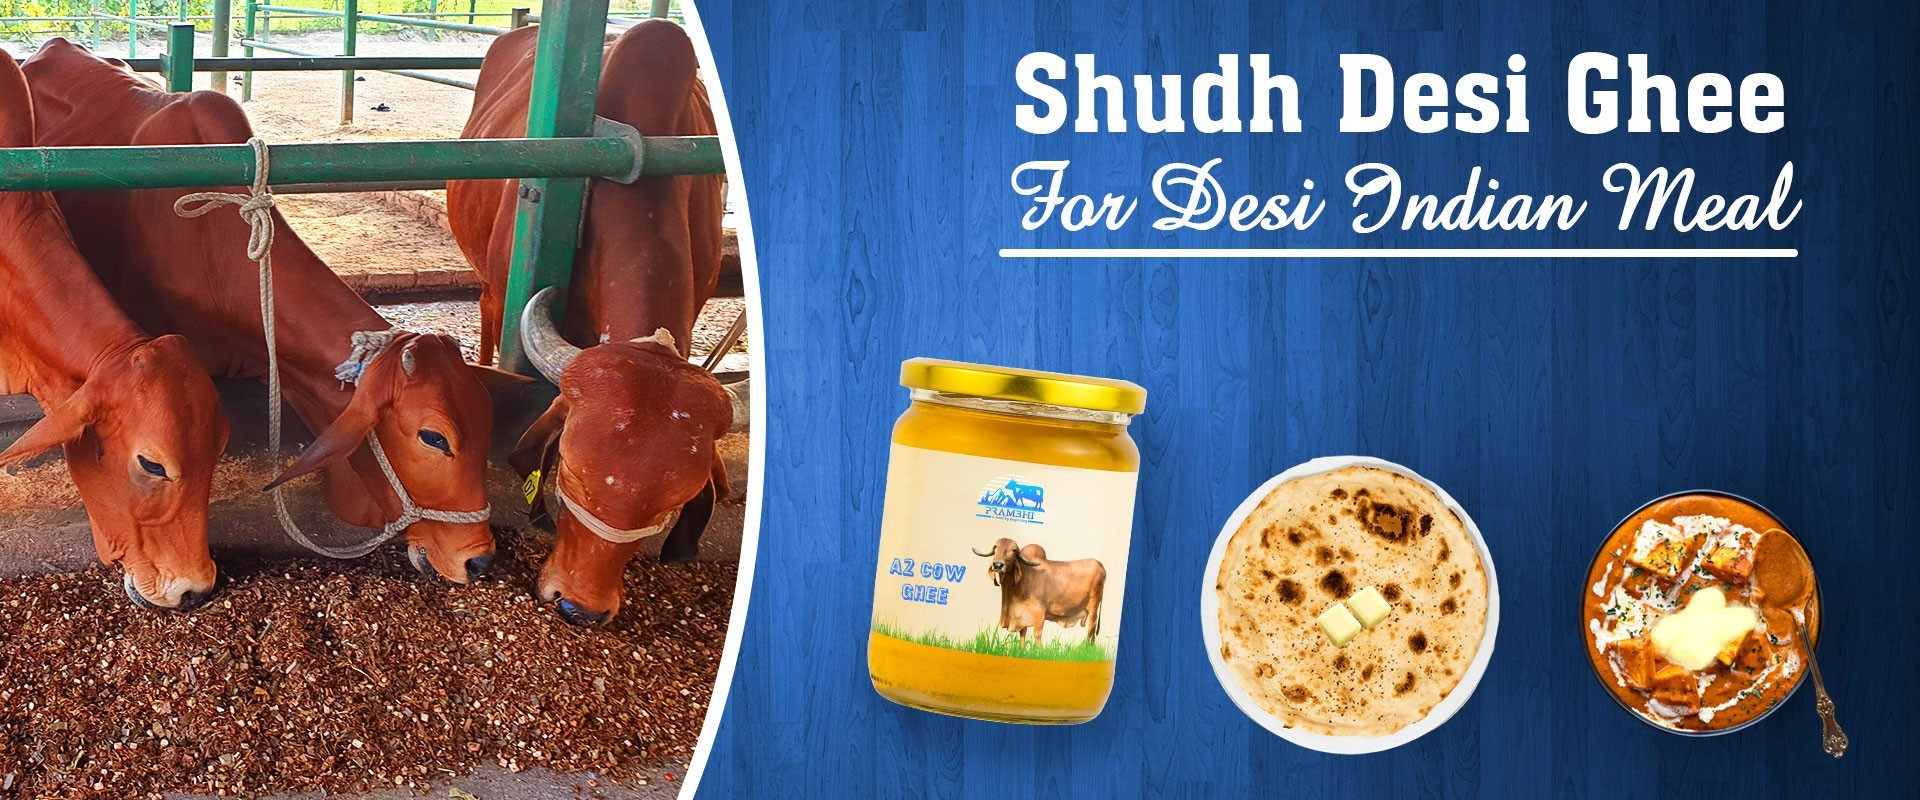 Cow Ghee Manufacturers